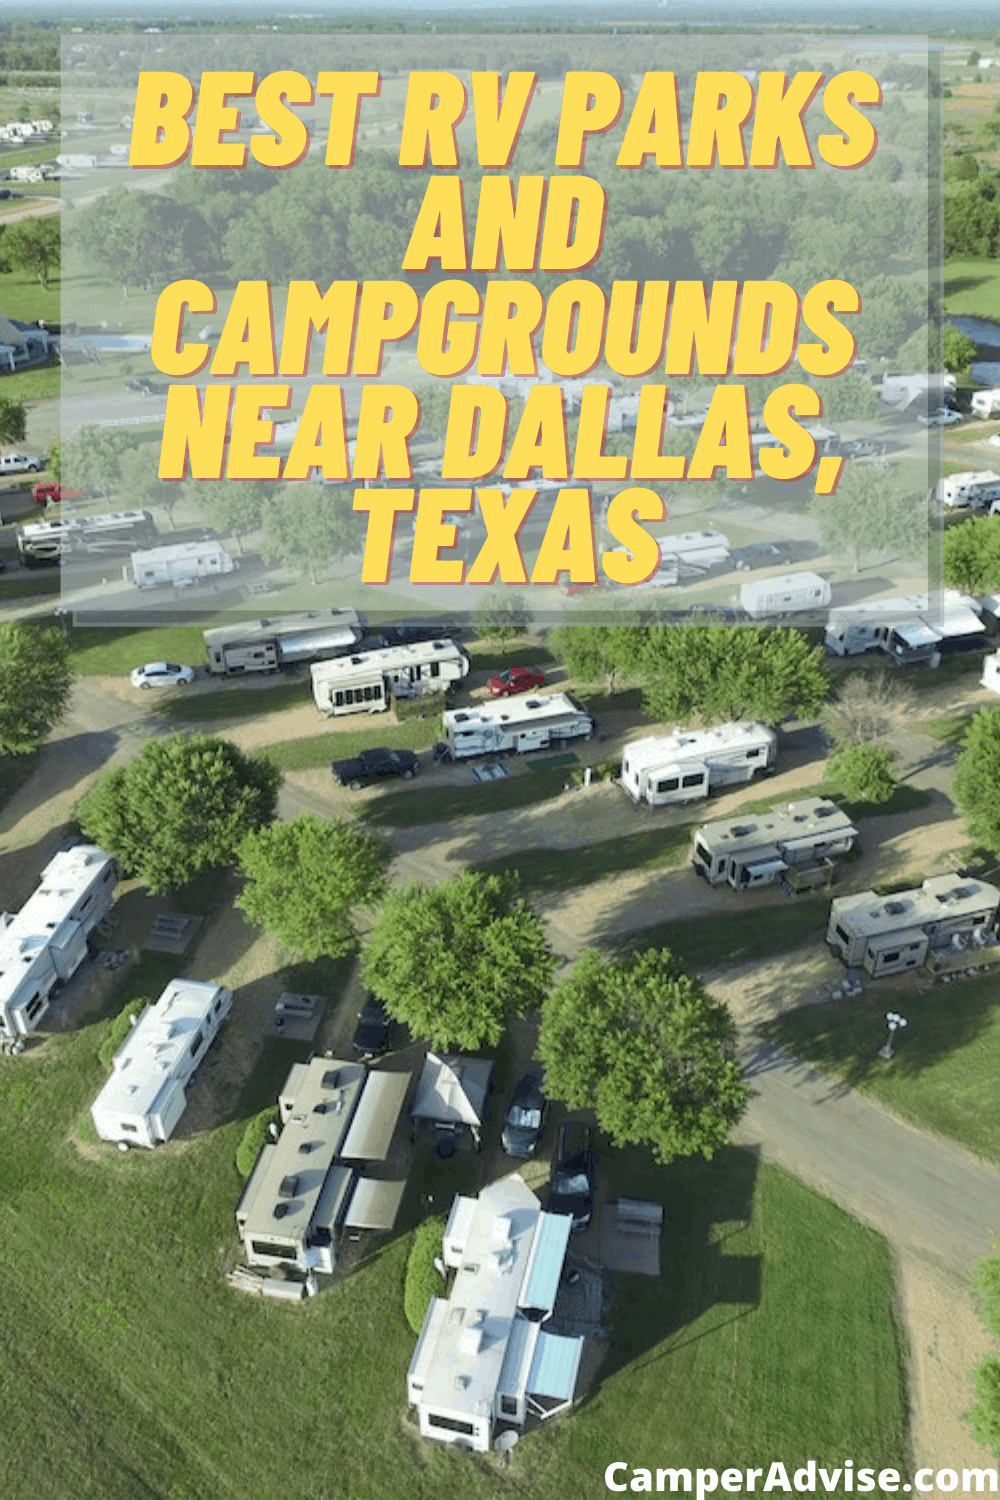 Best RV Parks and Campgrounds near Dallas, Texas